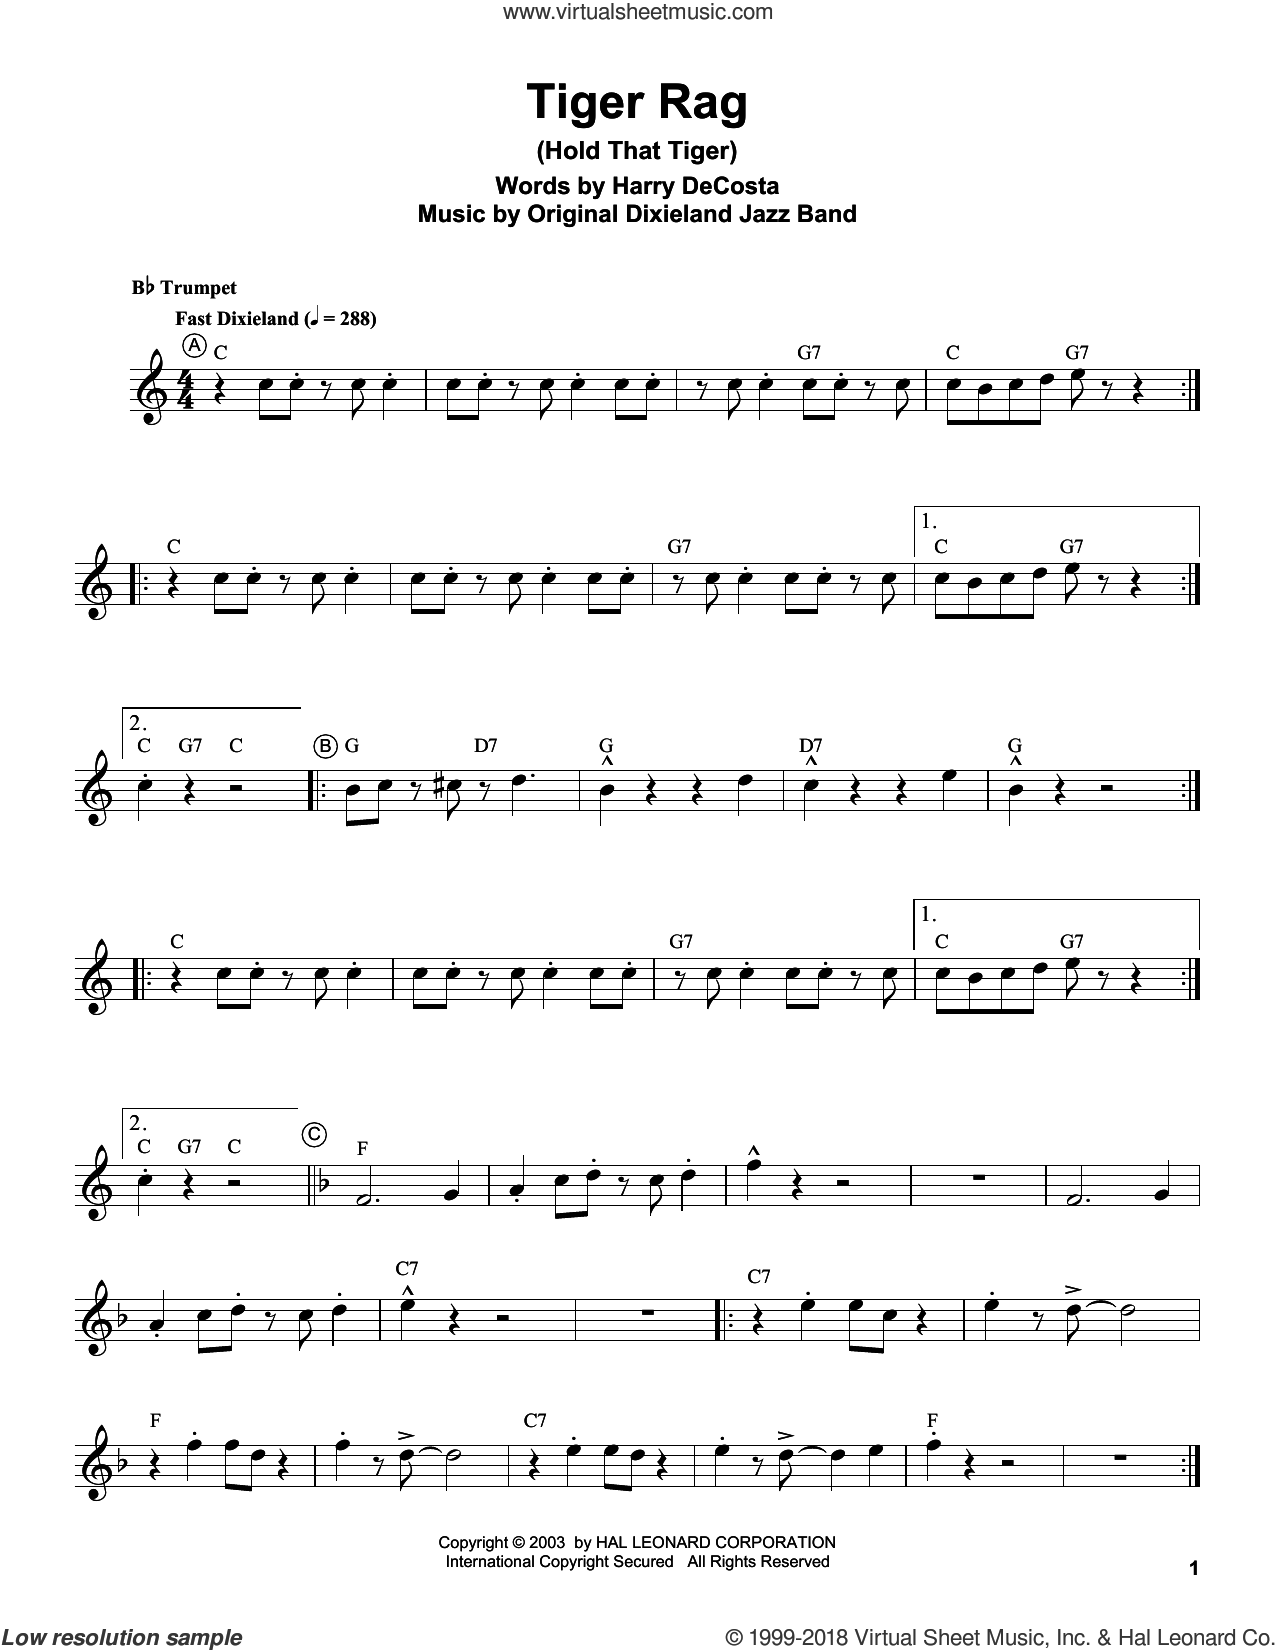 Tiger Rag (Hold That Tiger) sheet music for trumpet solo (transcription) by Louis Armstrong and Harry DeCosta, intermediate trumpet (transcription)